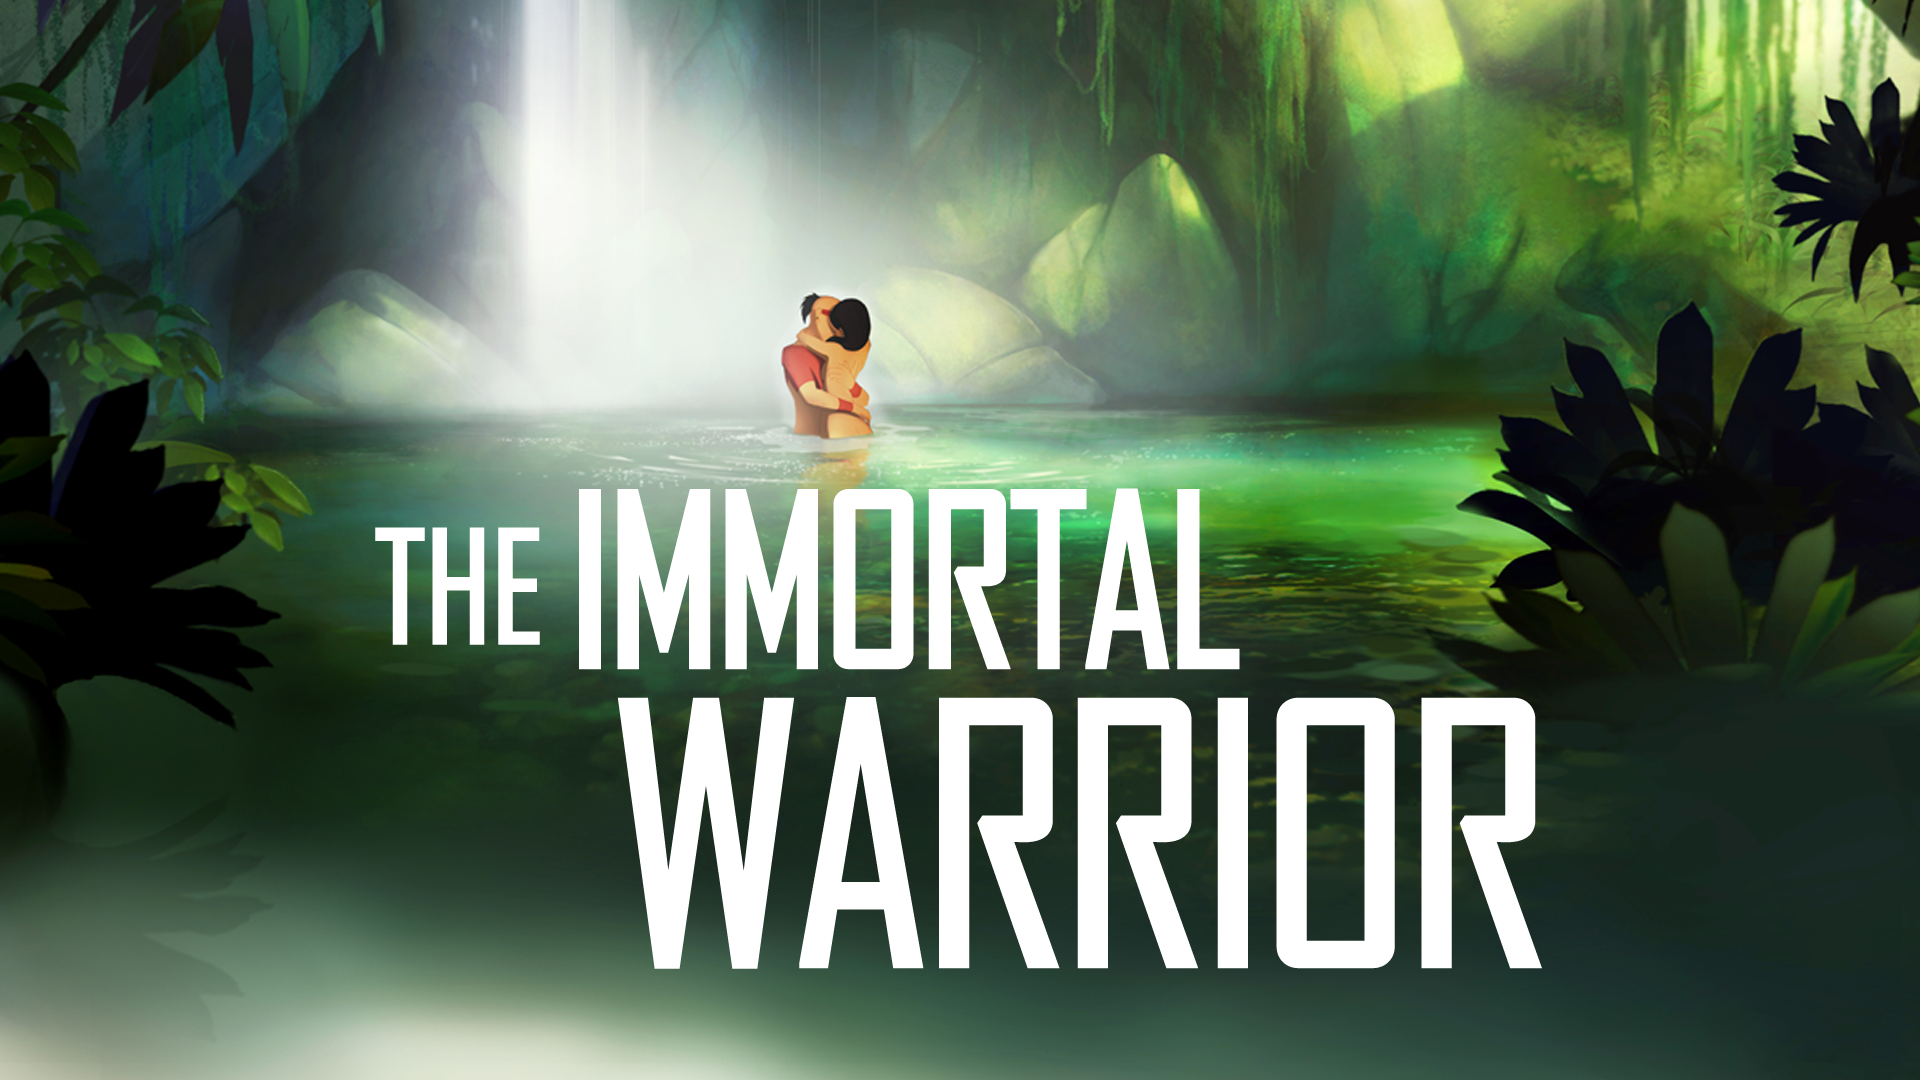 The Immortal Warrior